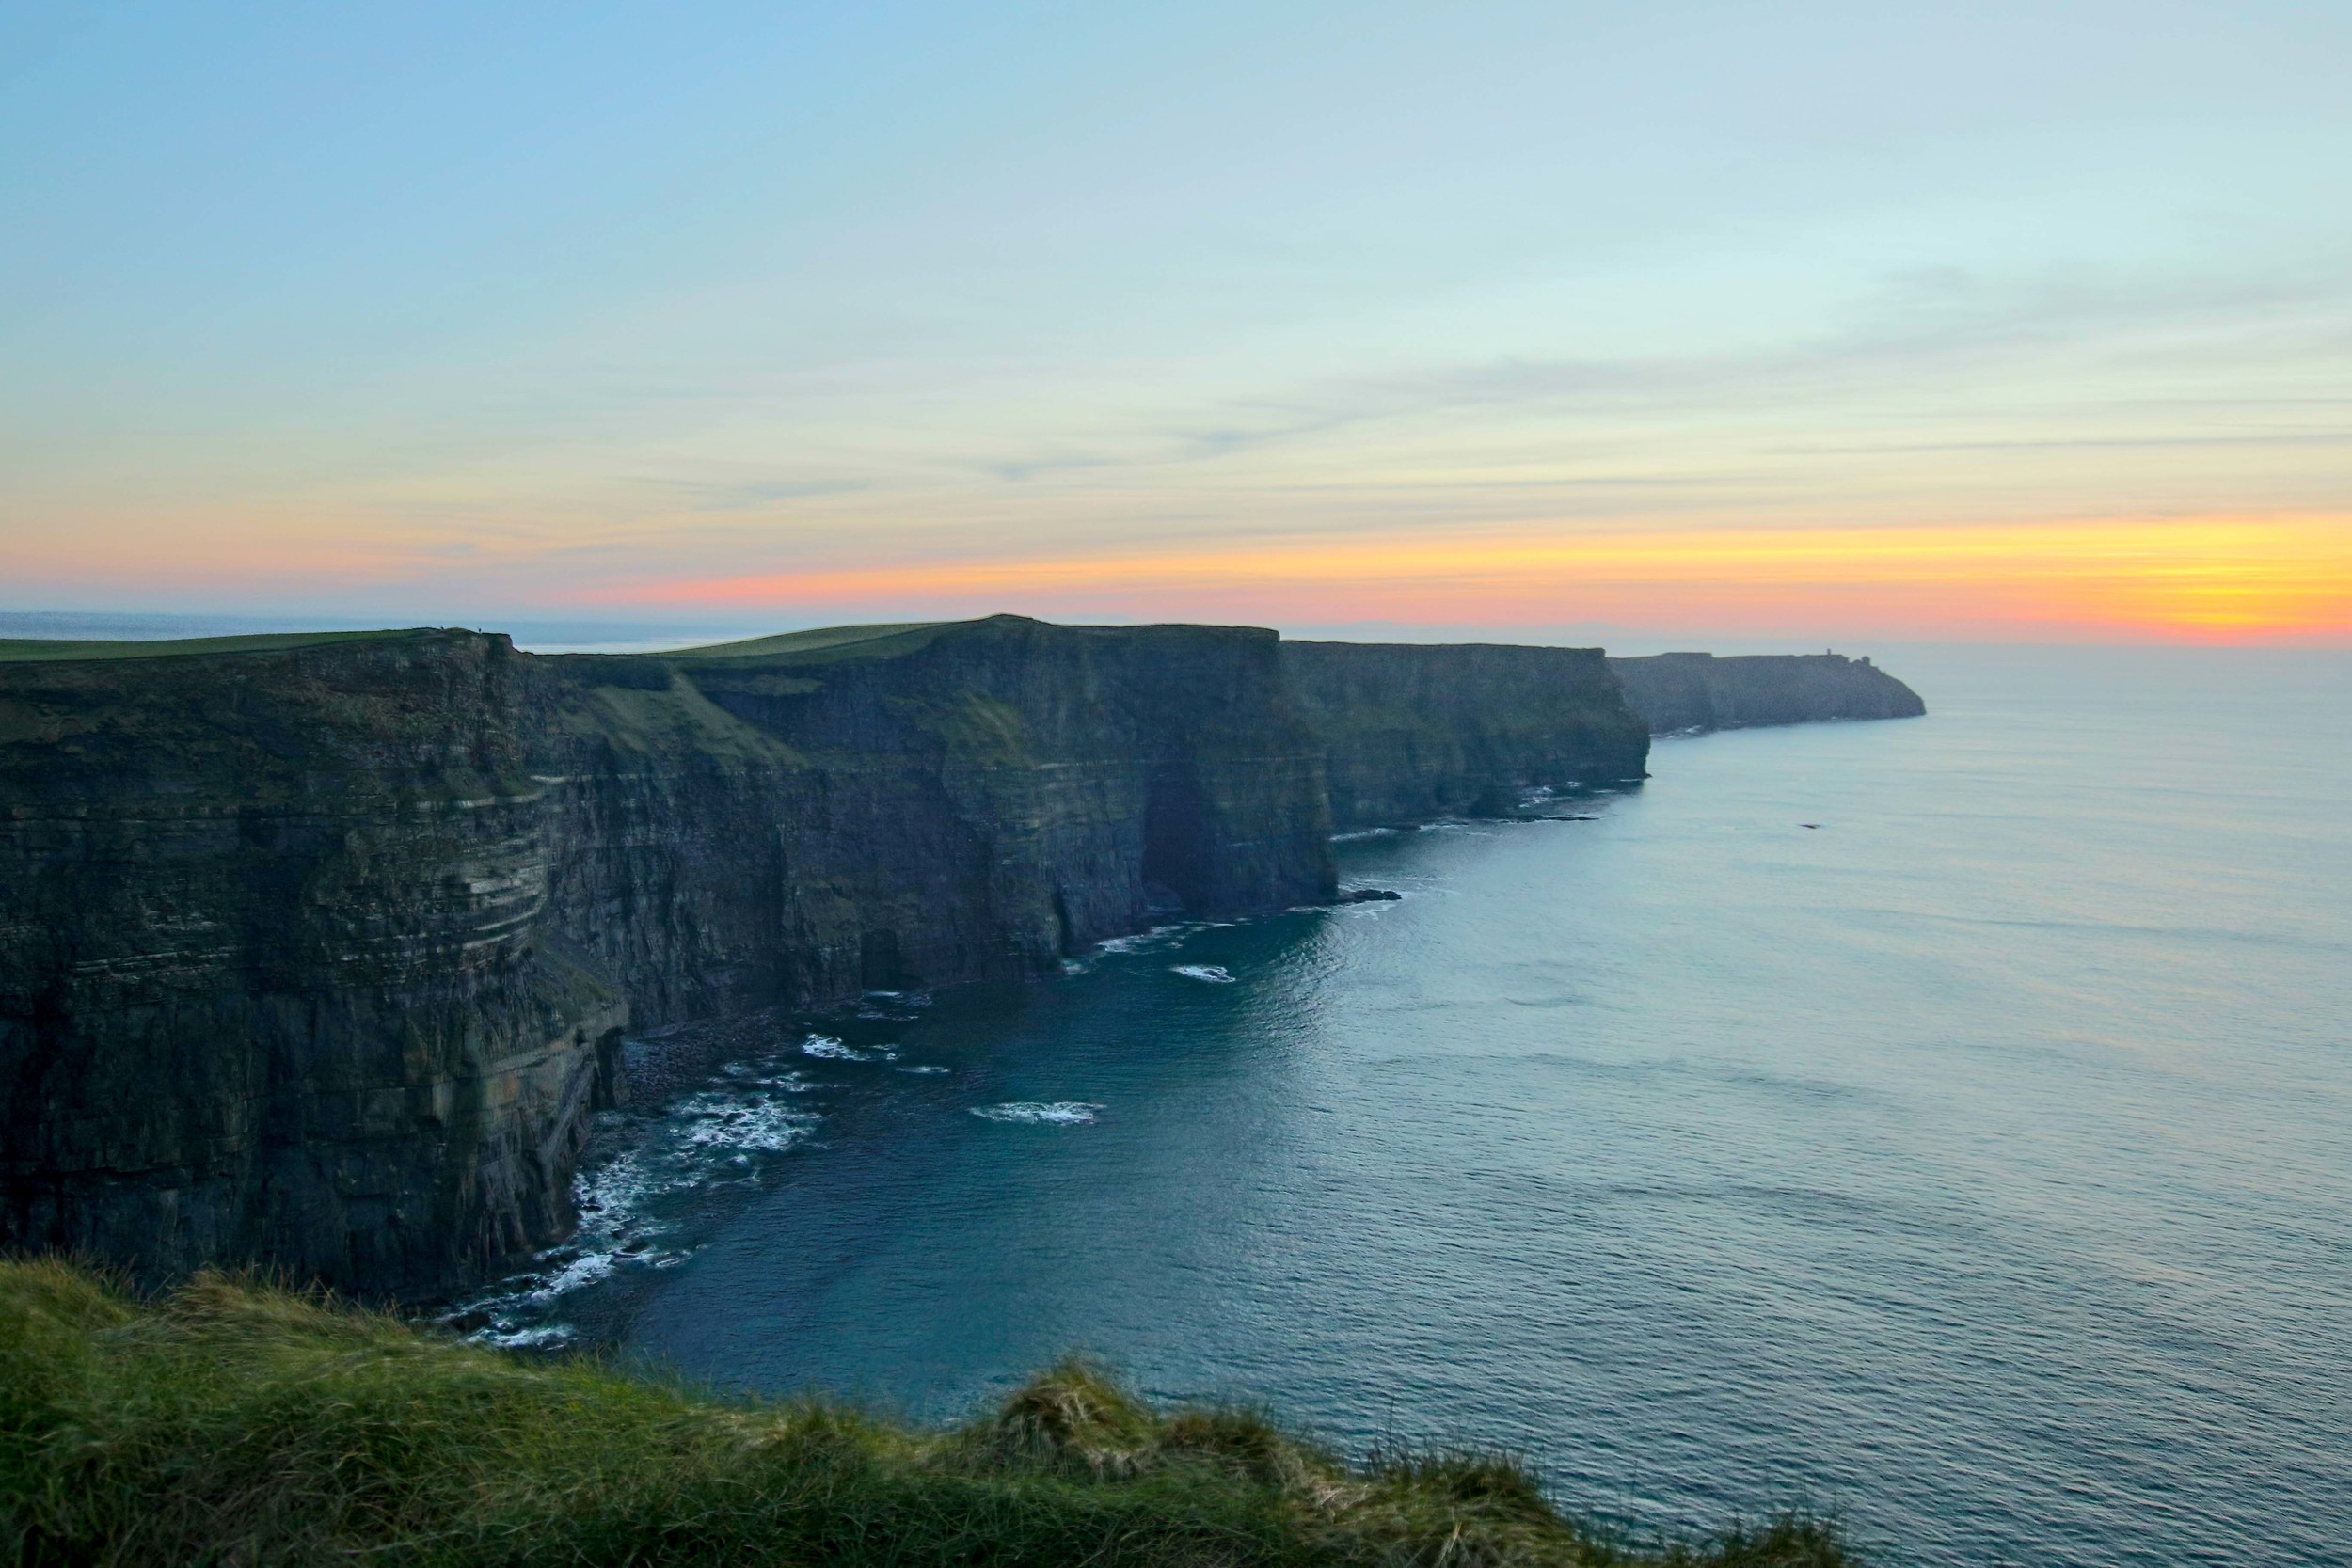 Cliffs of Moher -Simply breathtaking!